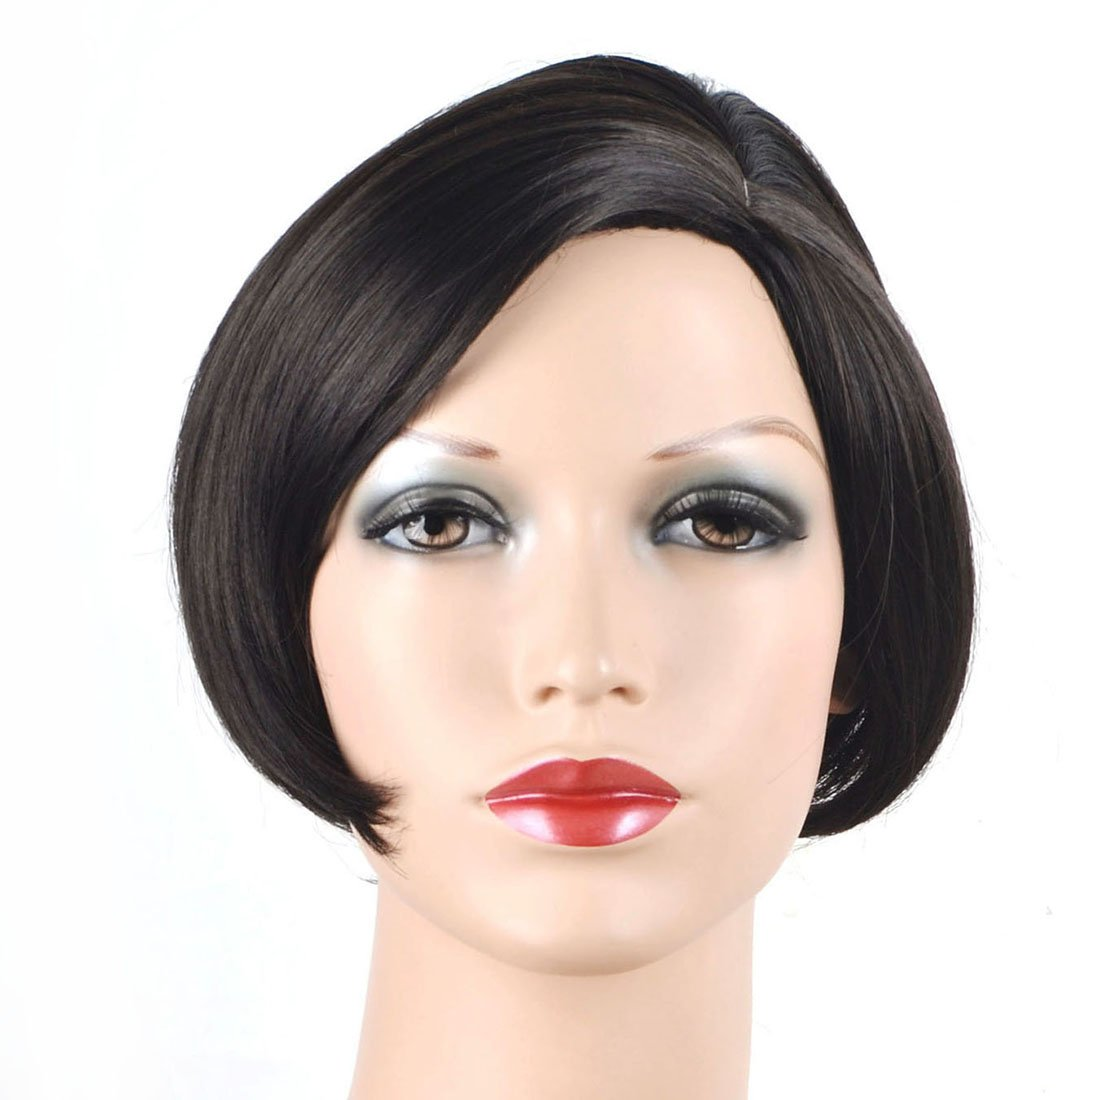 Coolsky Wig OL Short Black Woman Hair For Party or Daily Life Cosplay